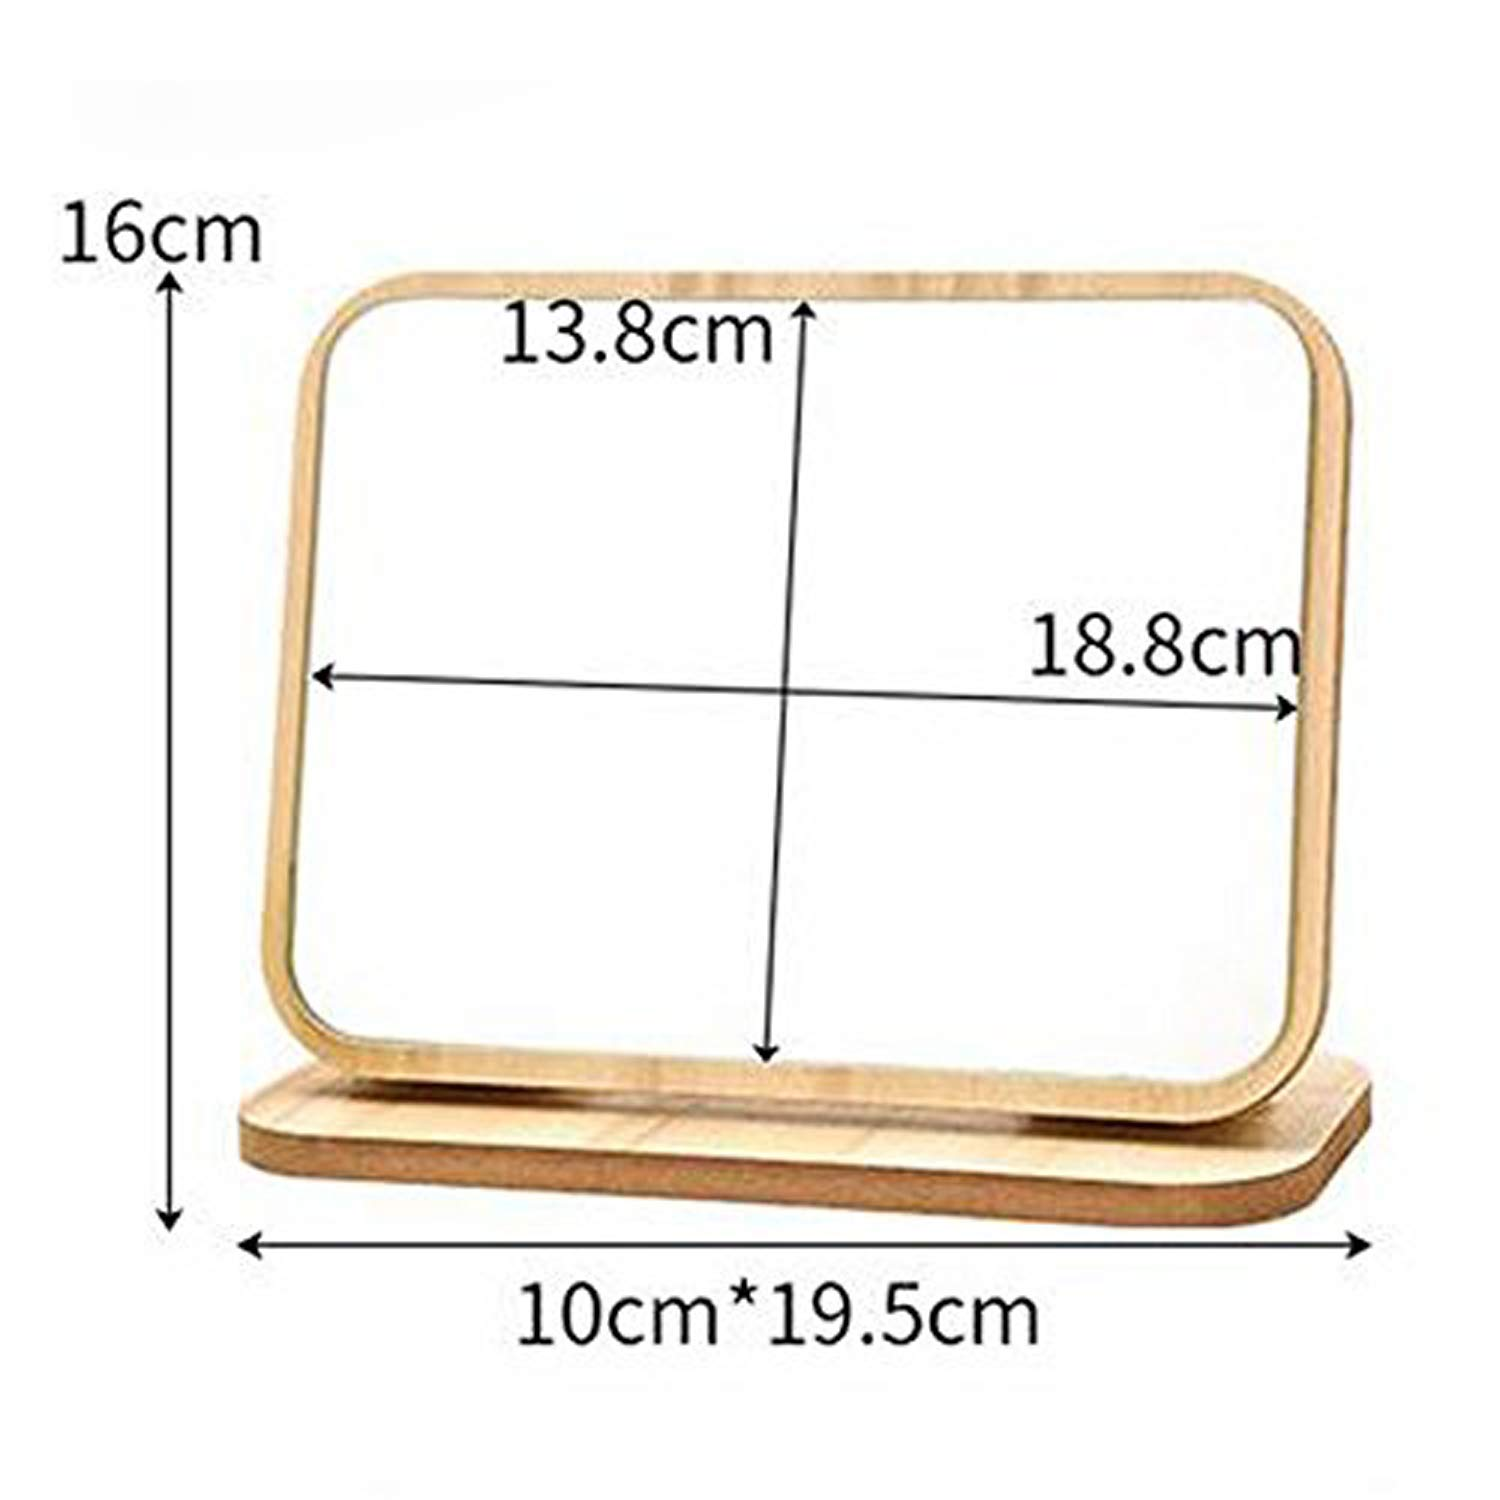 GOHIDE High Definition Cosmetic Mirror Wooden HD Makeup Mirror Simple Beauty Mirror Dressing Folding Simple Portable Large Desktop by GOHIDE (Image #2)